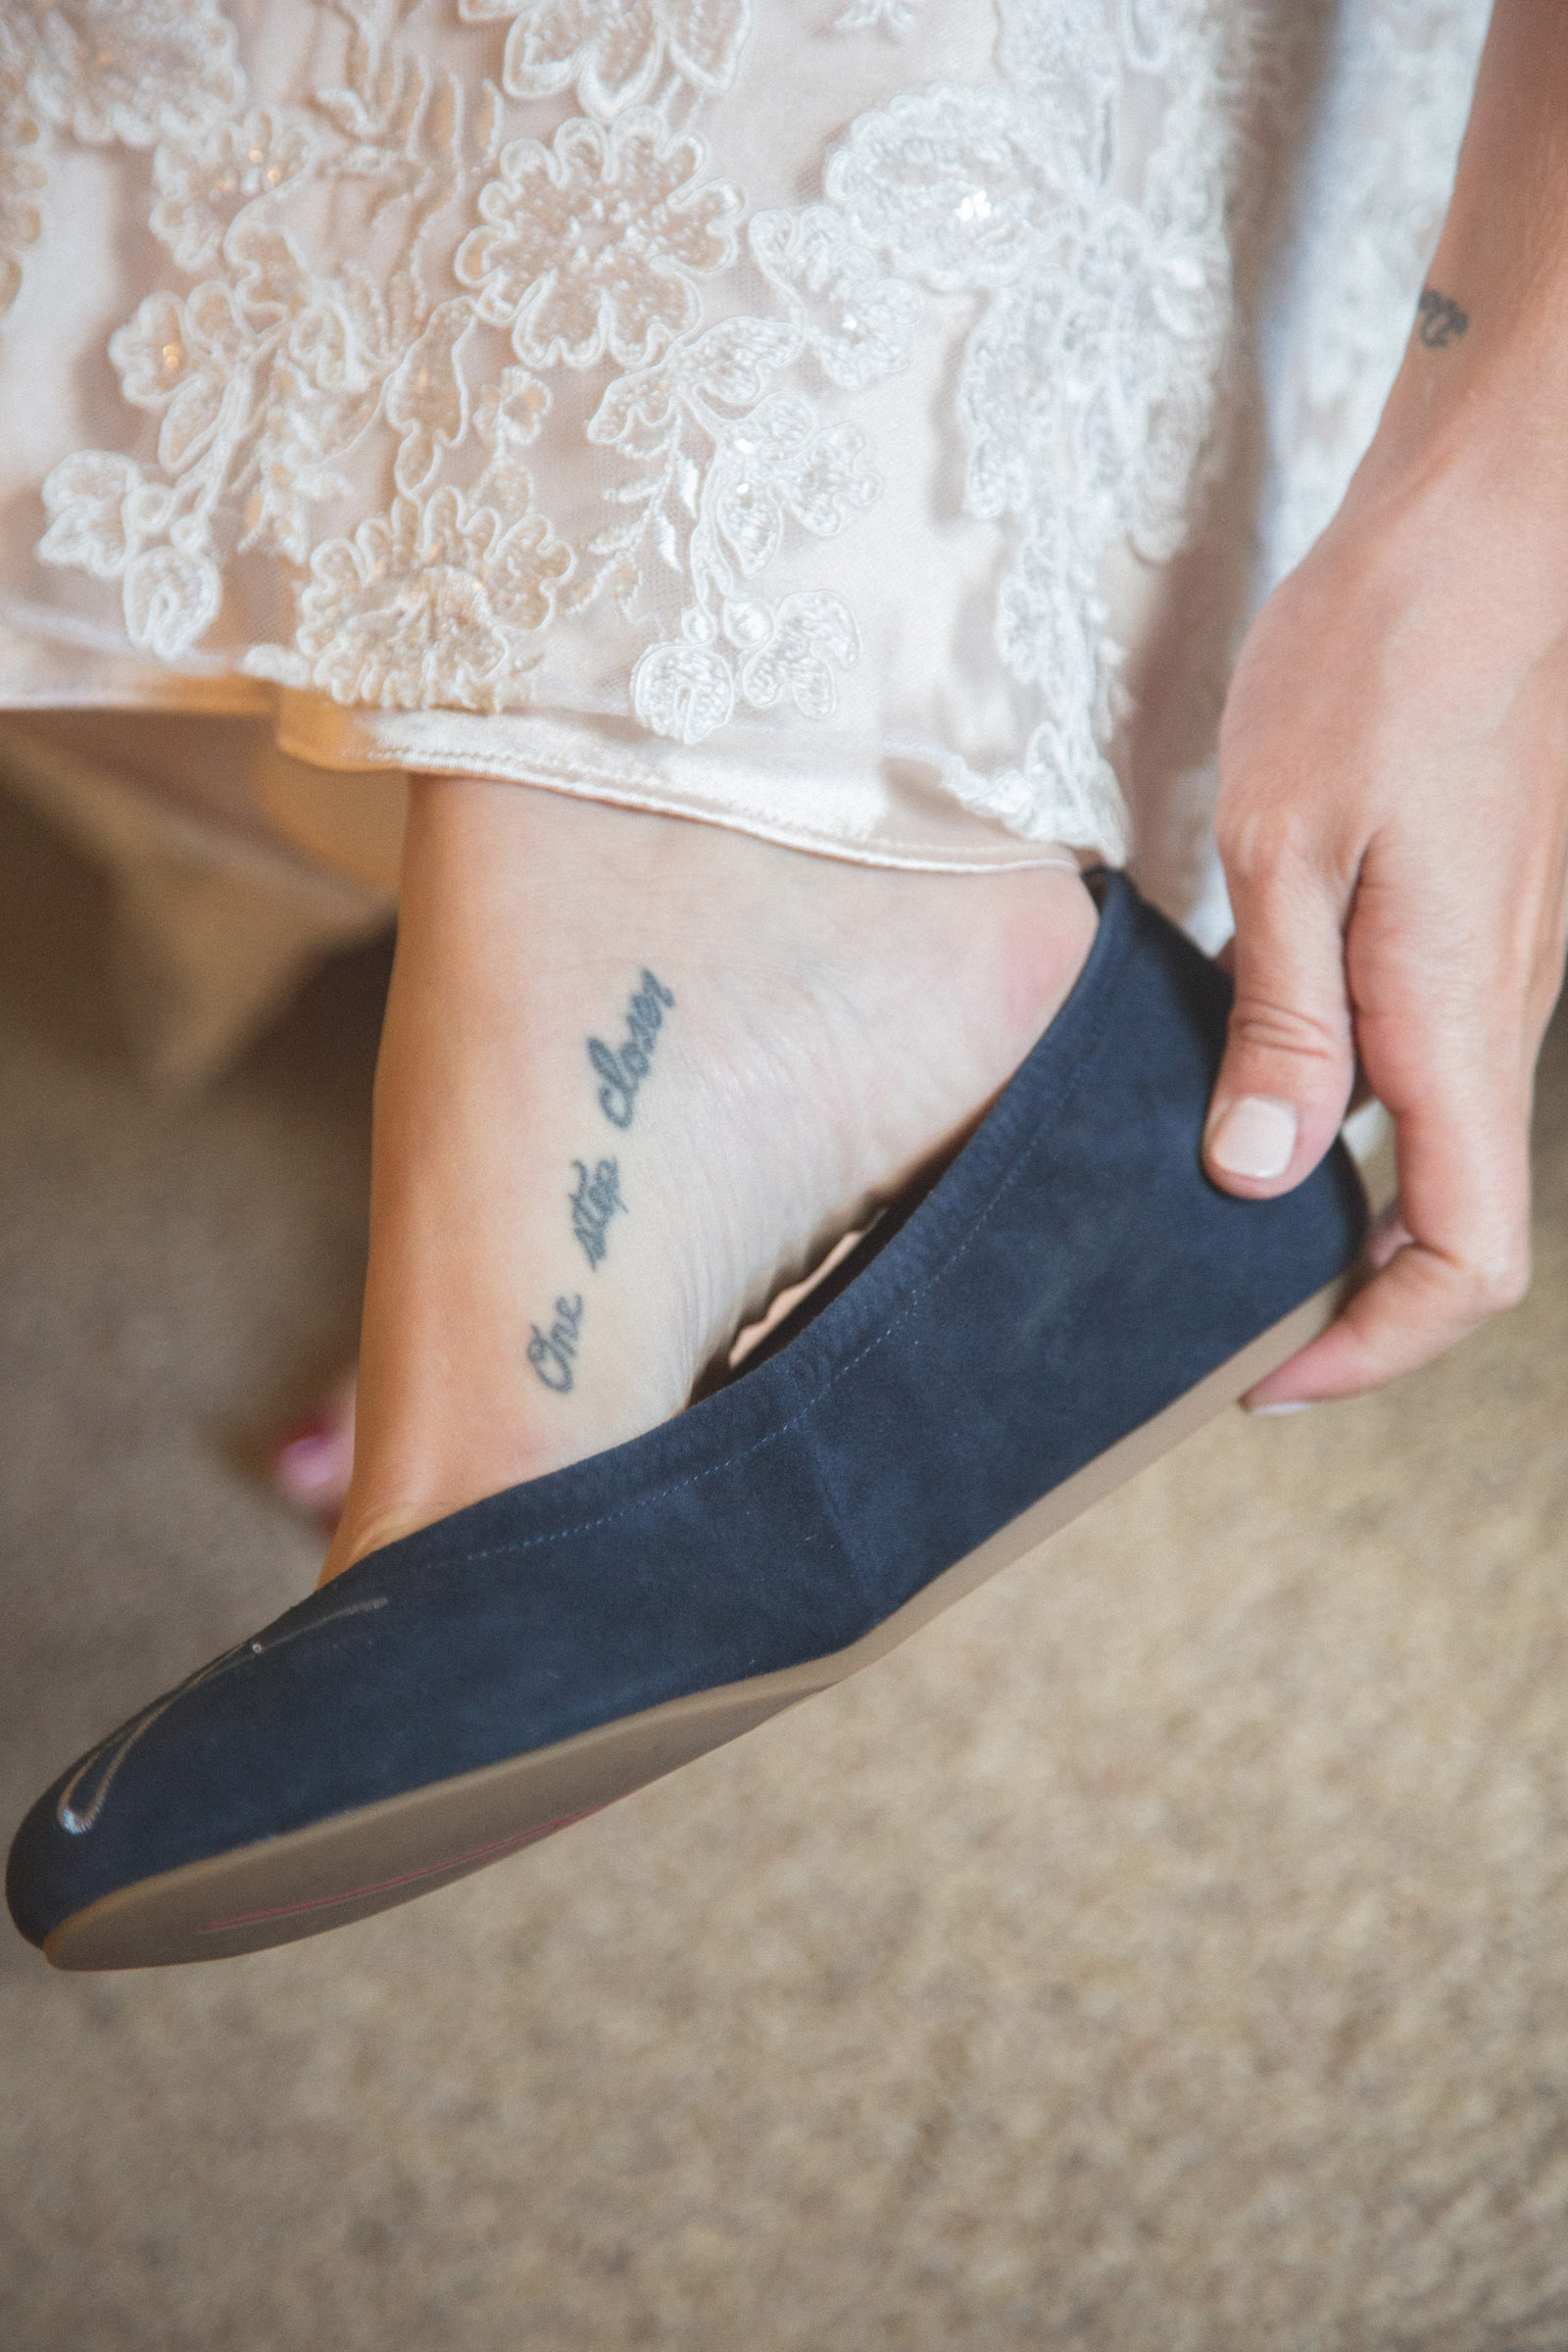 027-bride-puting-shoes-on-before-elopment-wedding-ceremony